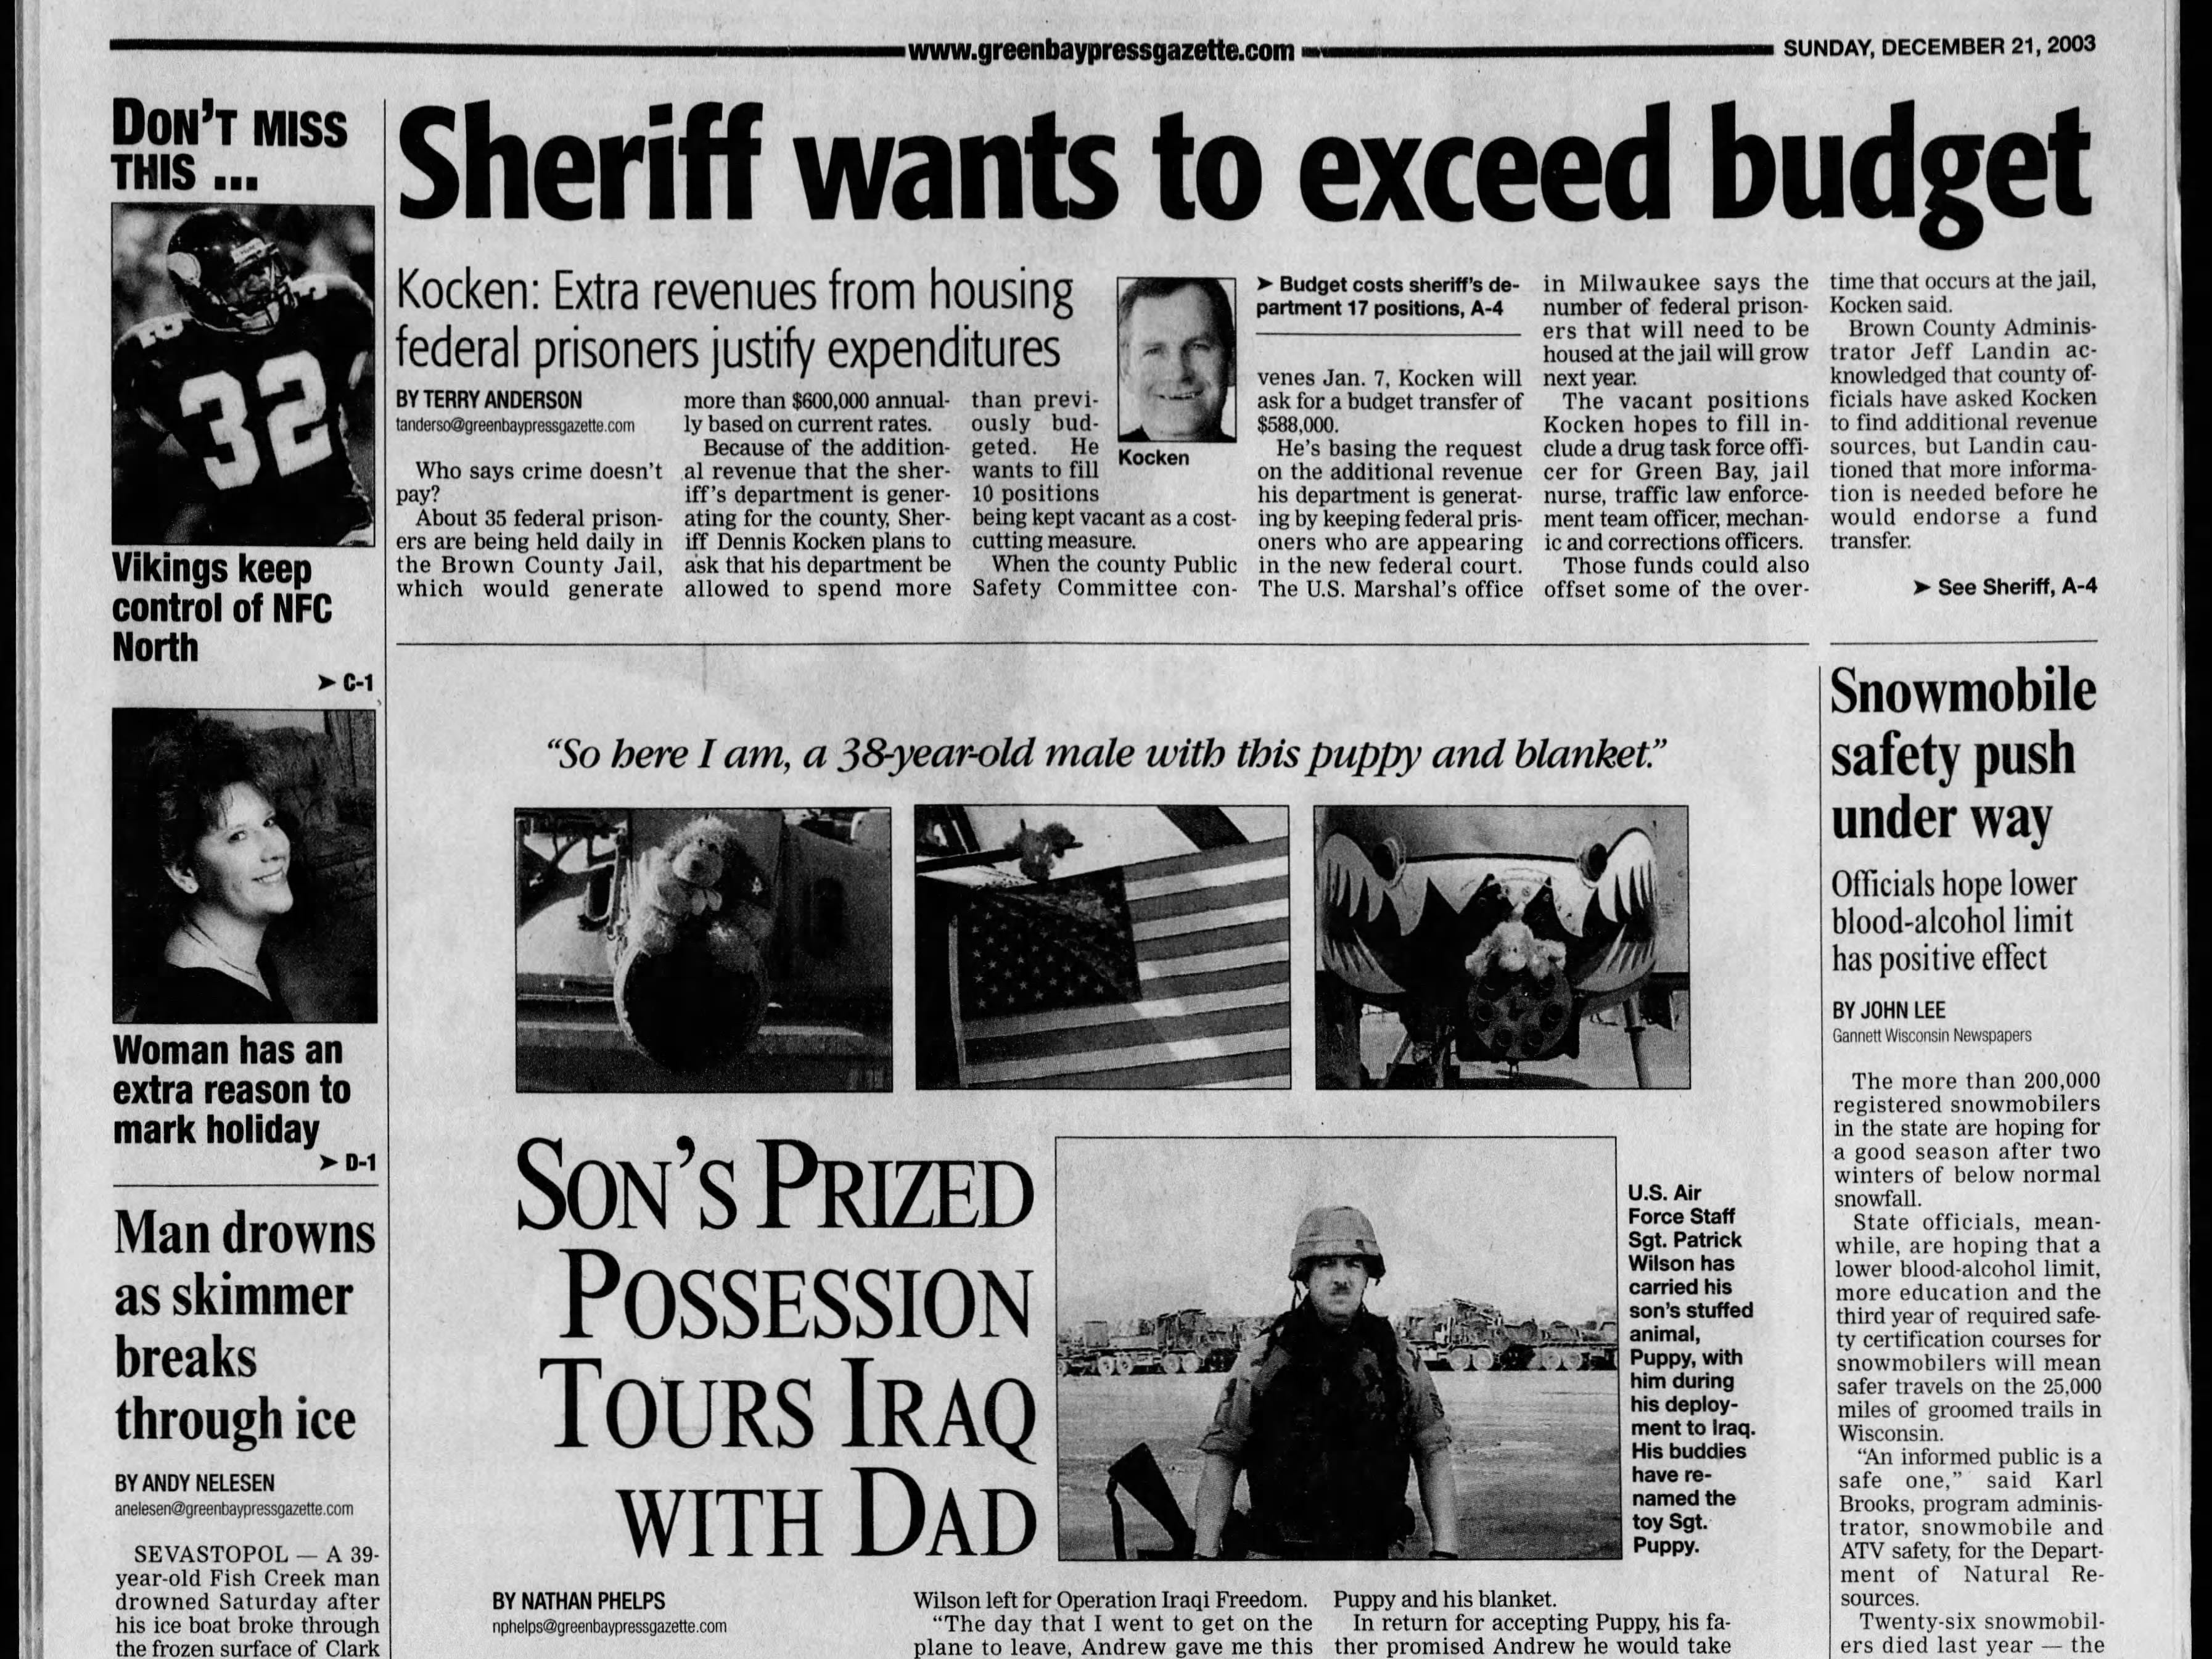 Today in History: Dec. 21, 2003